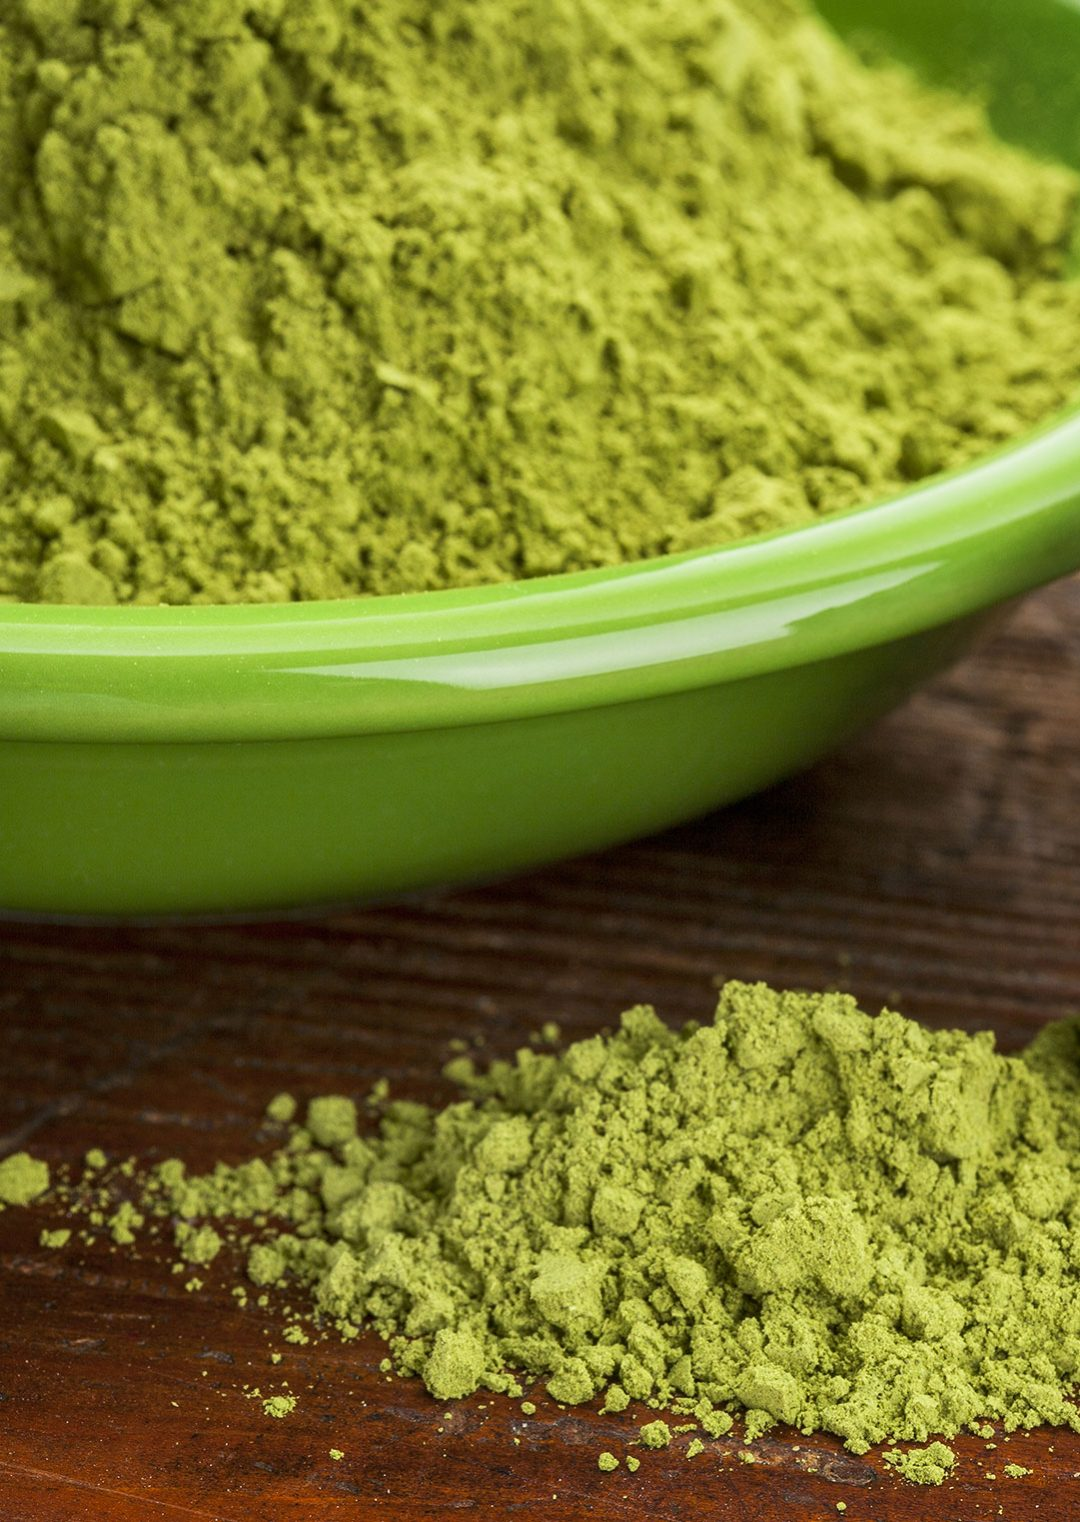 This Green Powder Is A Super Source Of Iron, Vitamin C, & Calcium! | What plant has more iron than spinach, more potassium than bananas, and more calcium than milk? Moringa! Learn about the benefits of moringa, plus 5 good reasons to add it to your diet! | WildernessFamilyNaturals.com